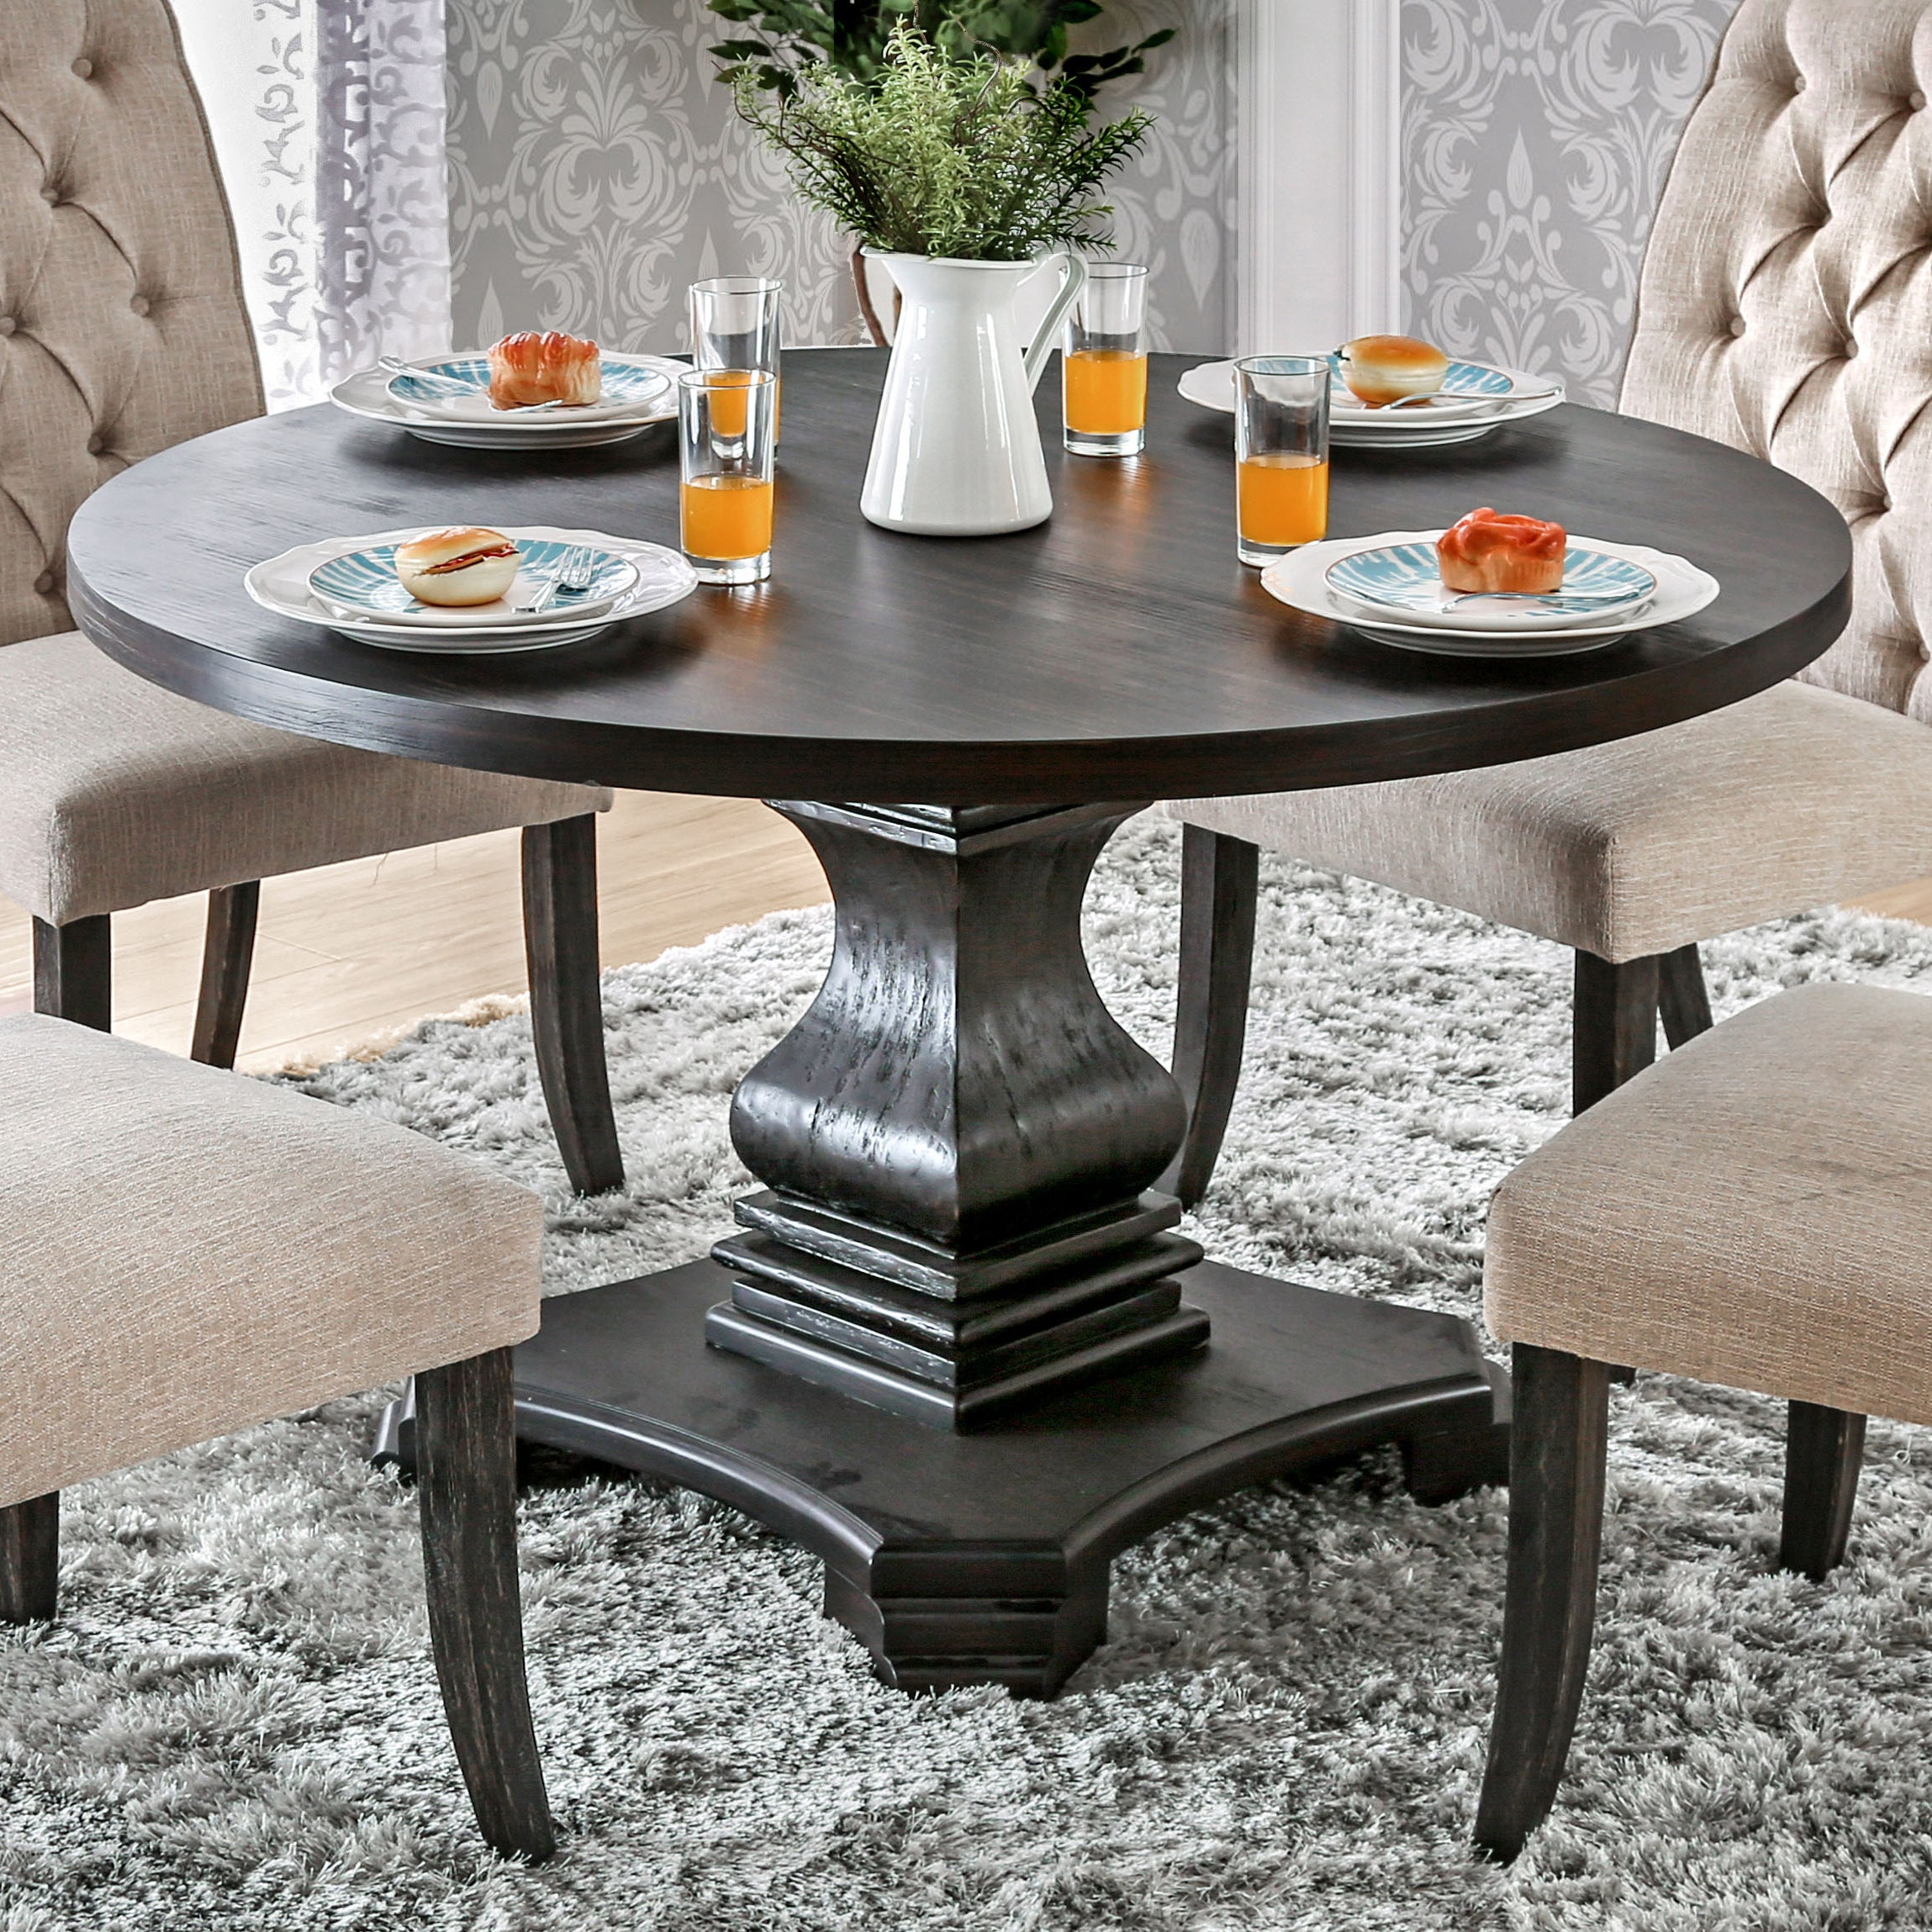 Furniture Of America Lucena Antique Black Wood Traditional Farmhouse Style Pedestal Base Round Dining Table